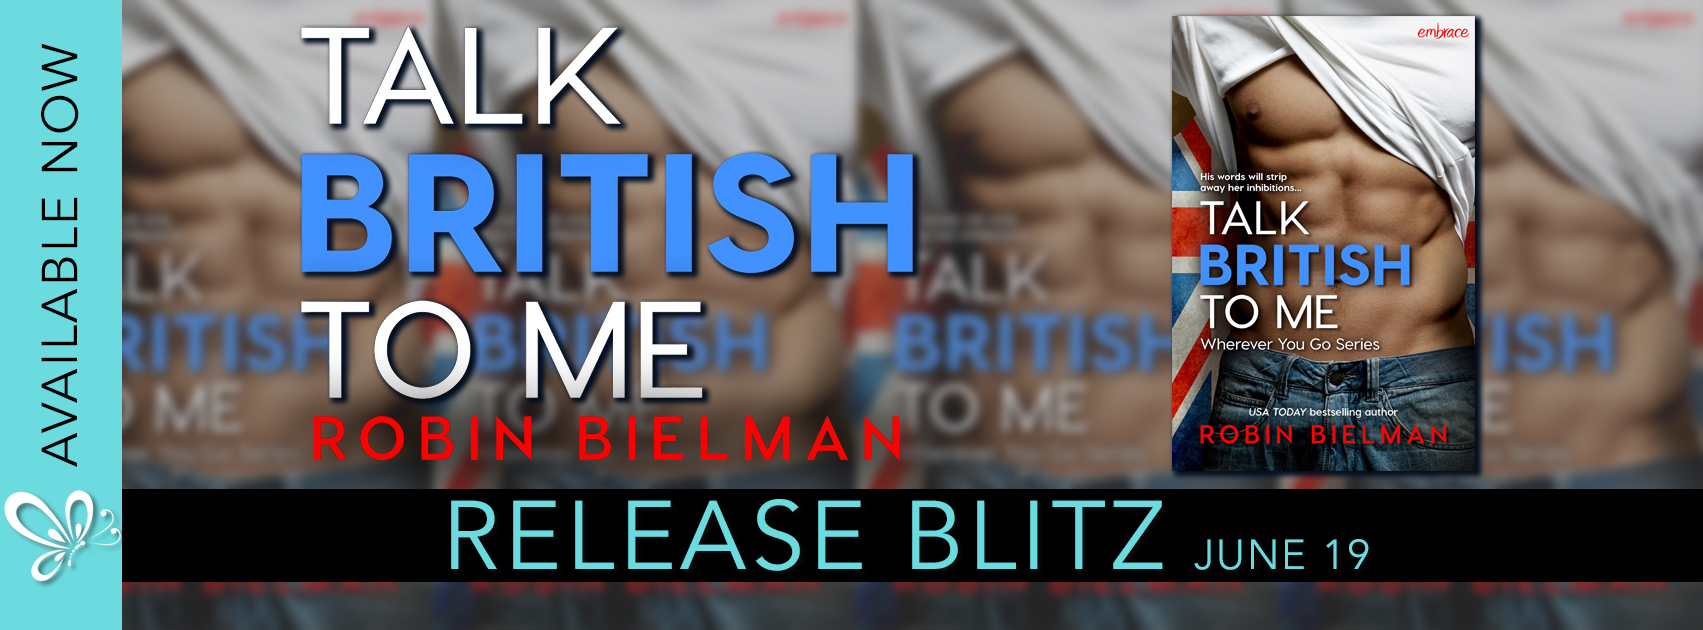 New Release – Talk British to Me by Robin Bielman